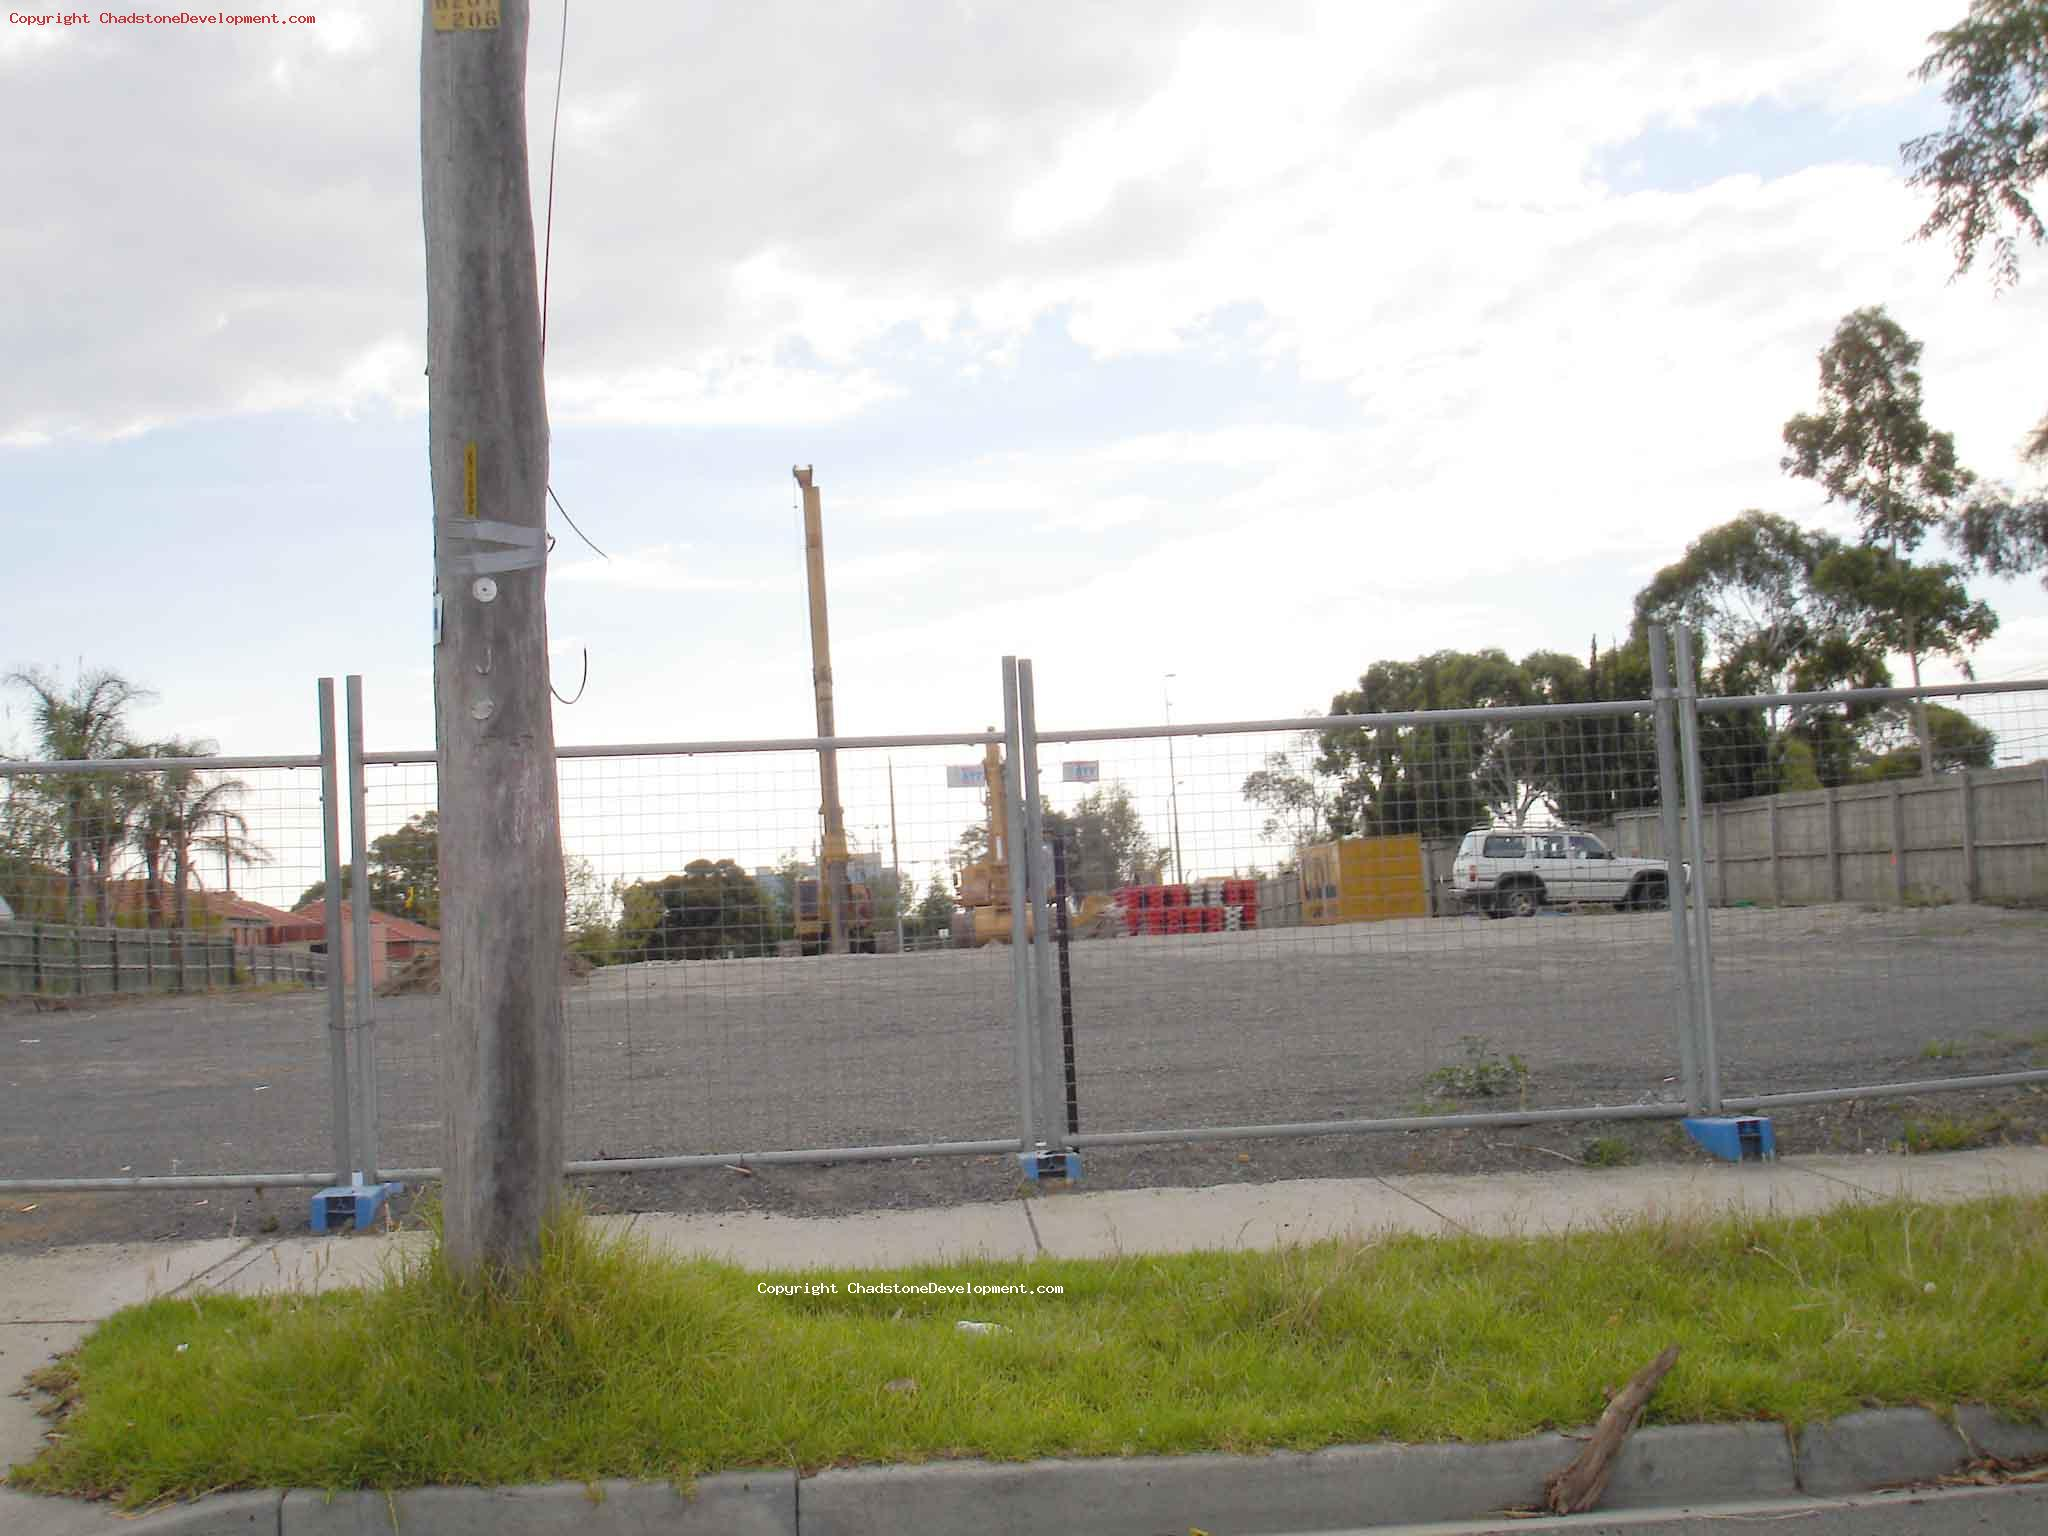 Earth moving equipment starting to appear - Chadstone Development Discussions